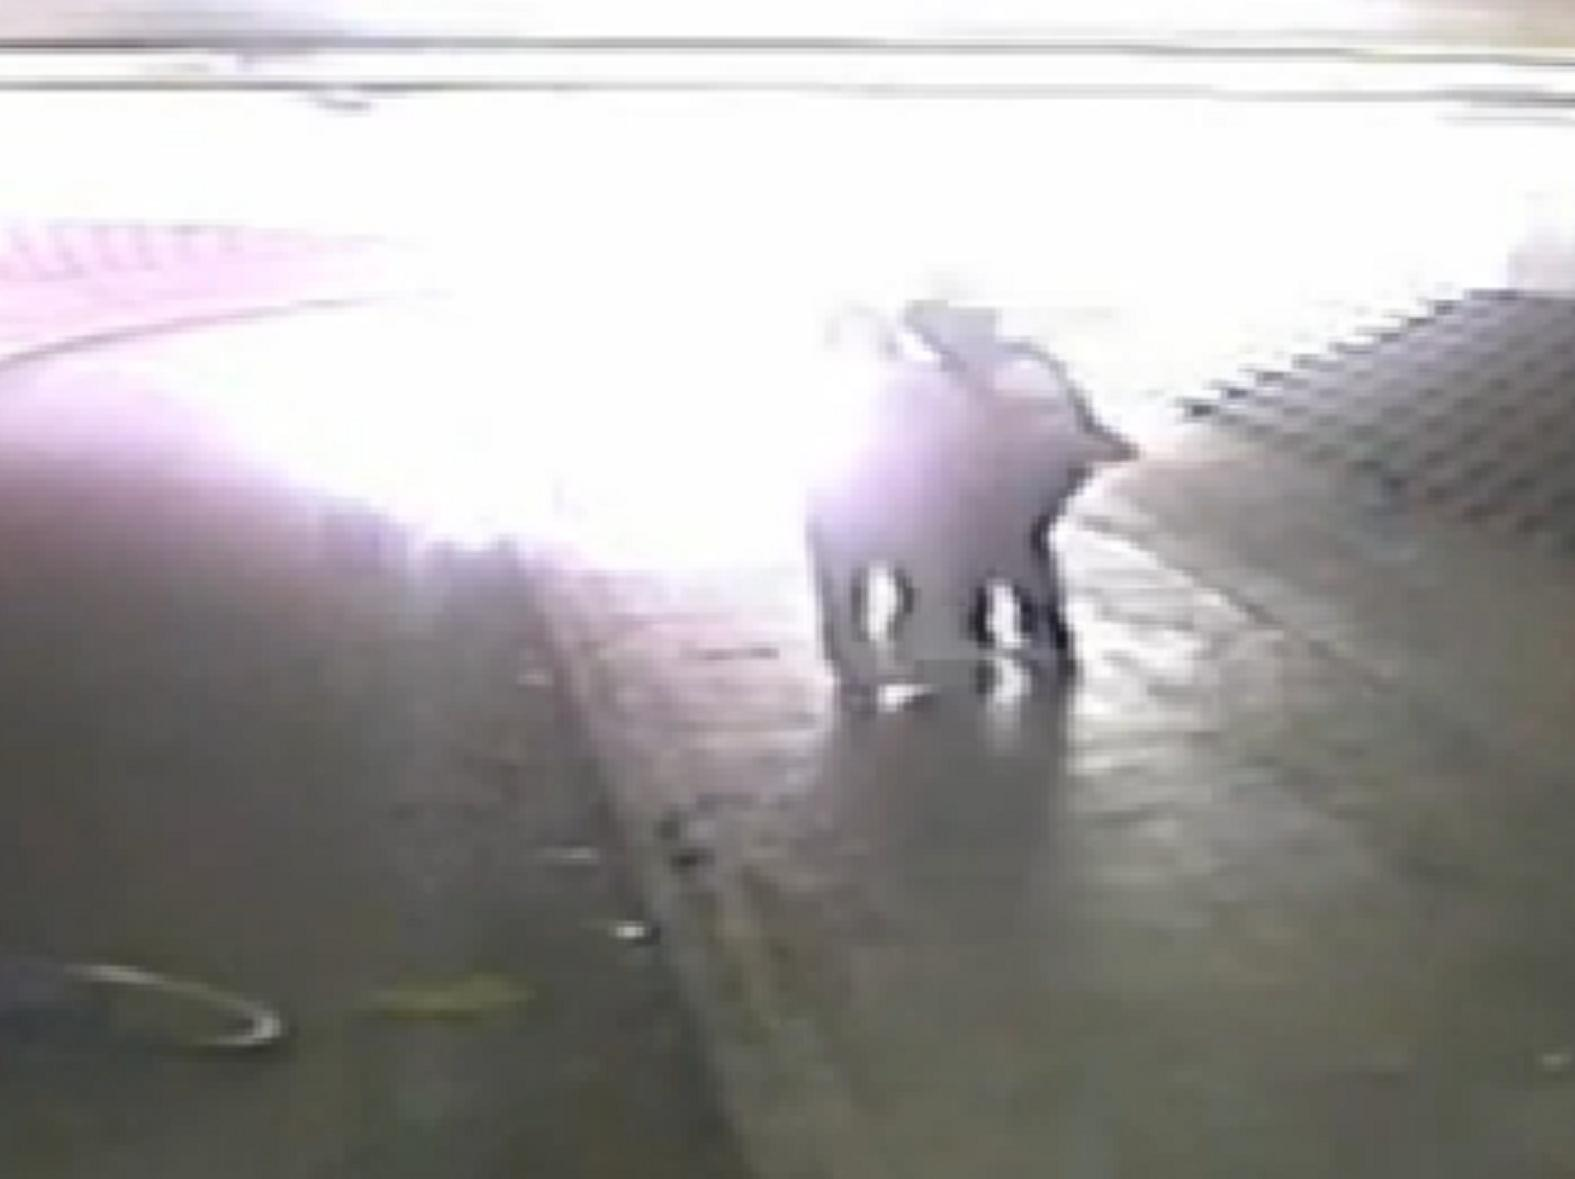 Attack on autistic teenager ignored - CCTV